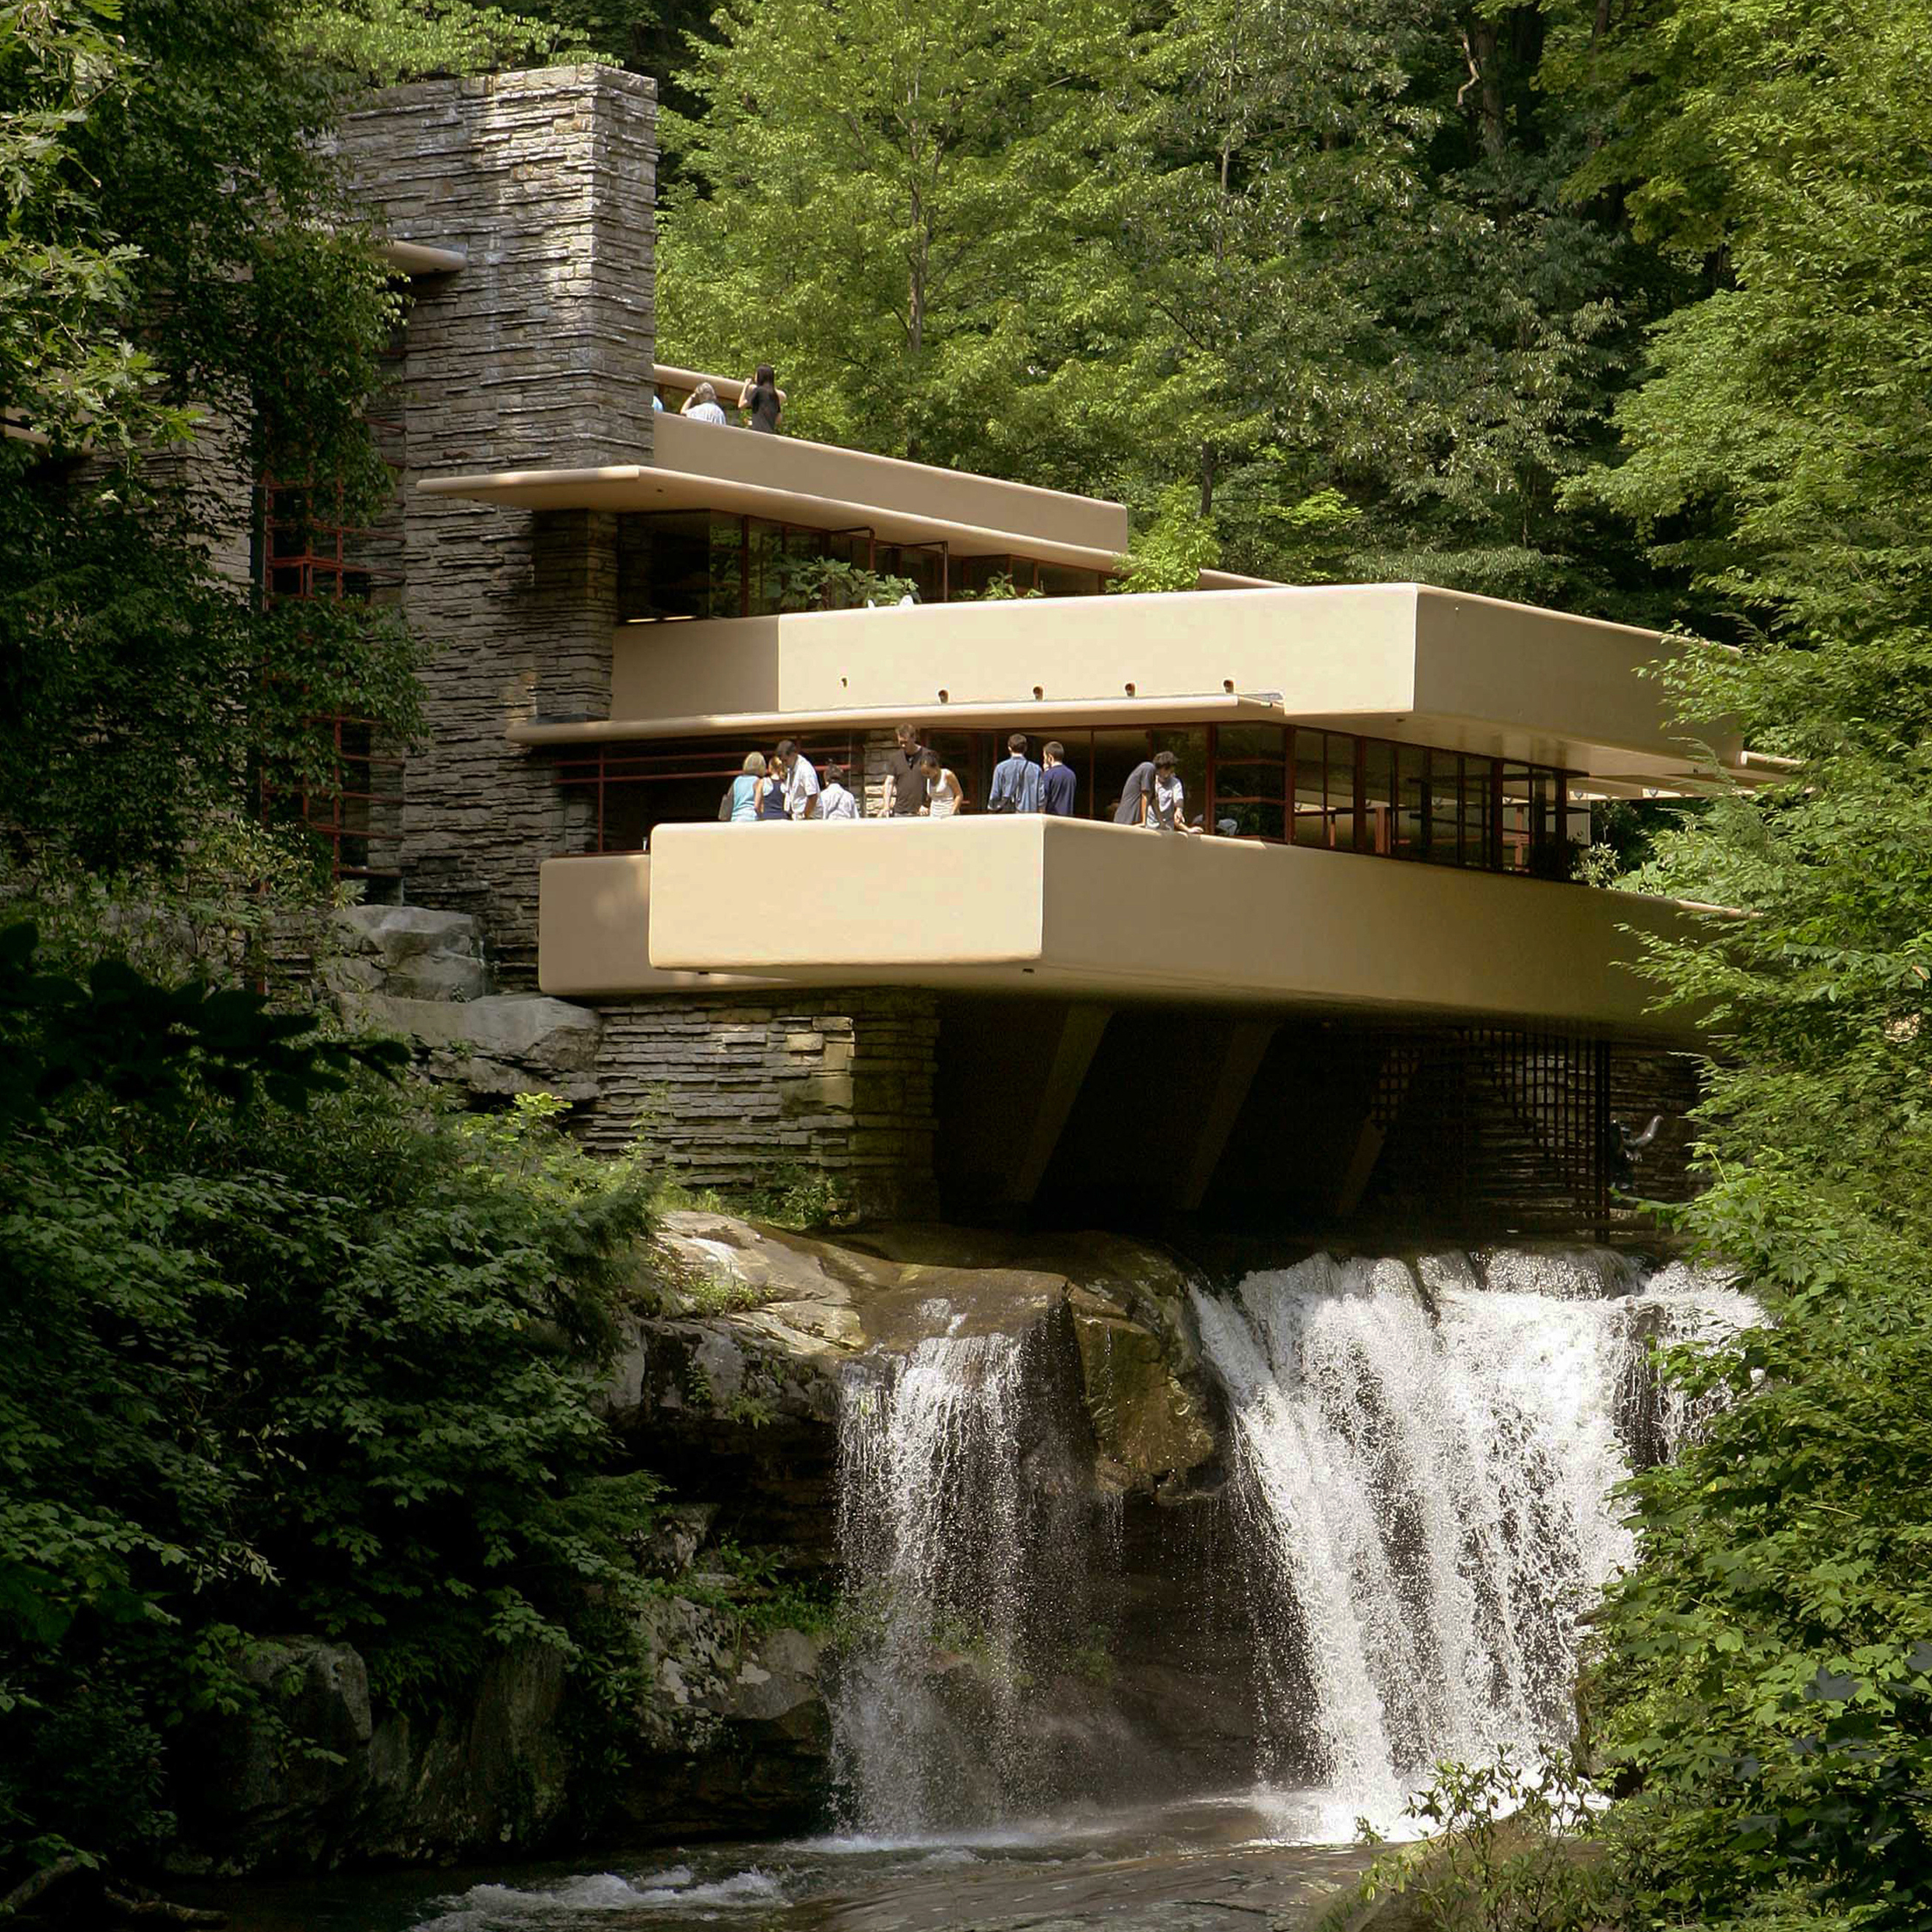 Unesco Adds 8 Frank Lloyd Wright Buildings To Its List Of World Heritage Sites Wbfo